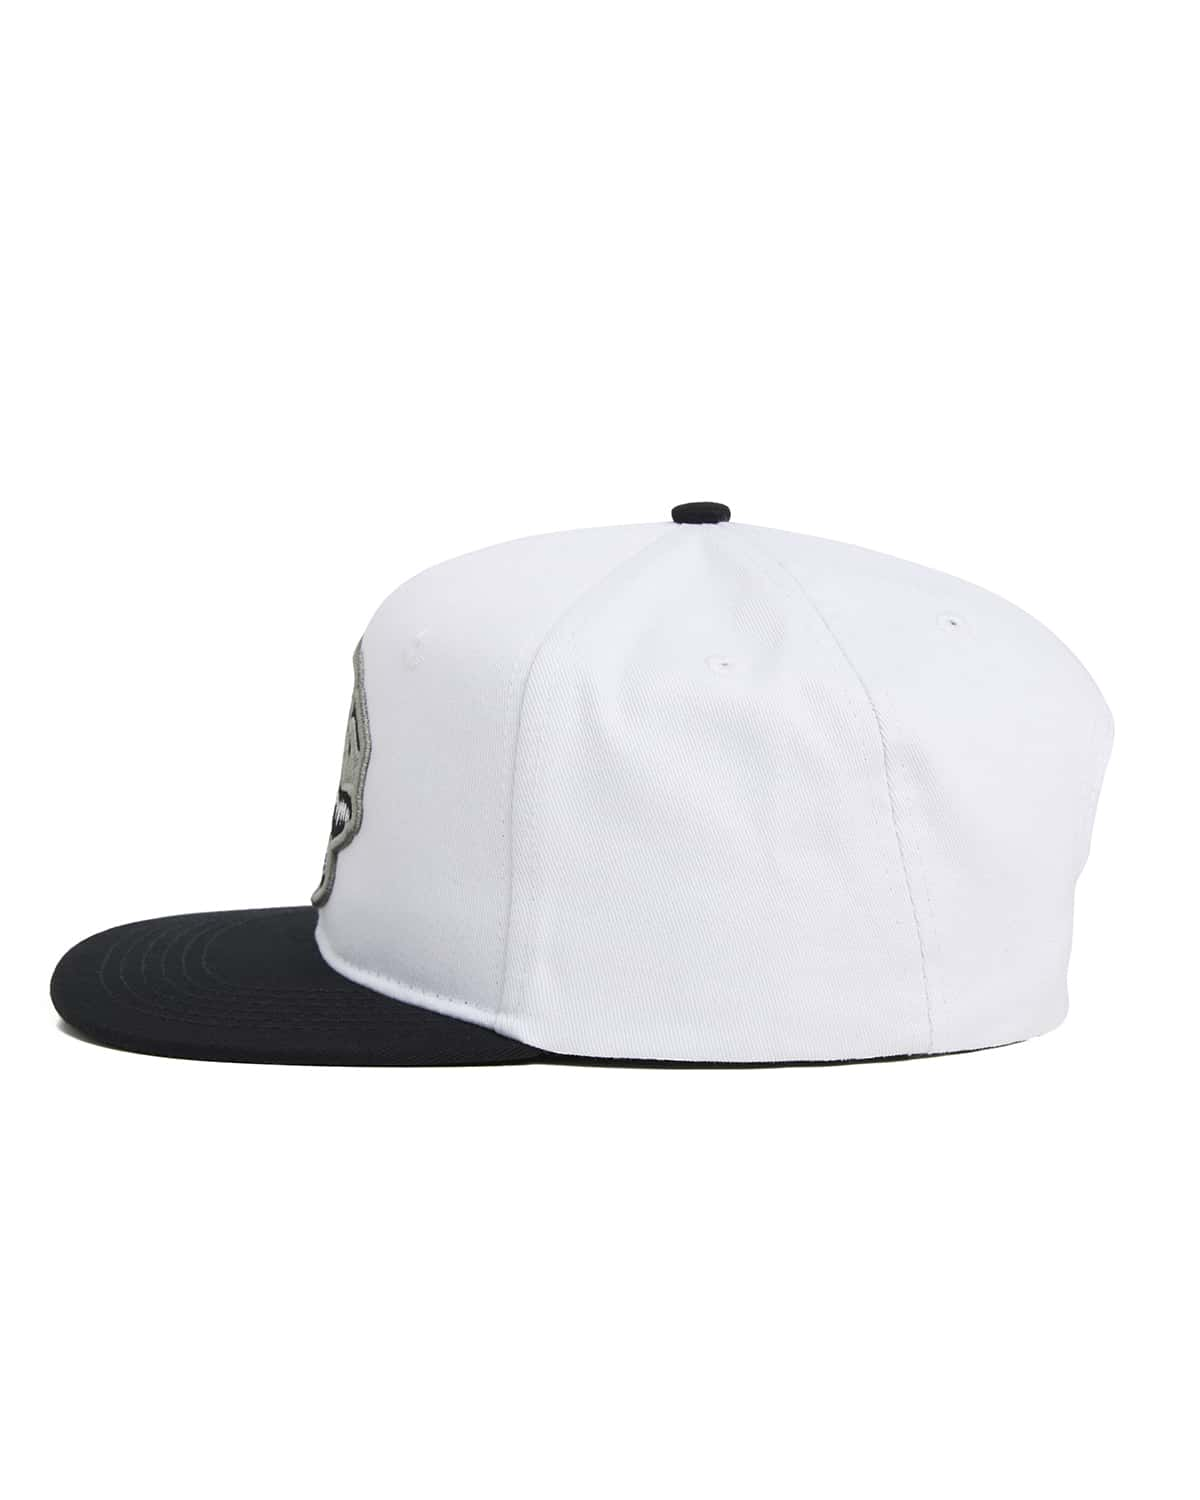 'Rex' Snapback - White/Black/Grey